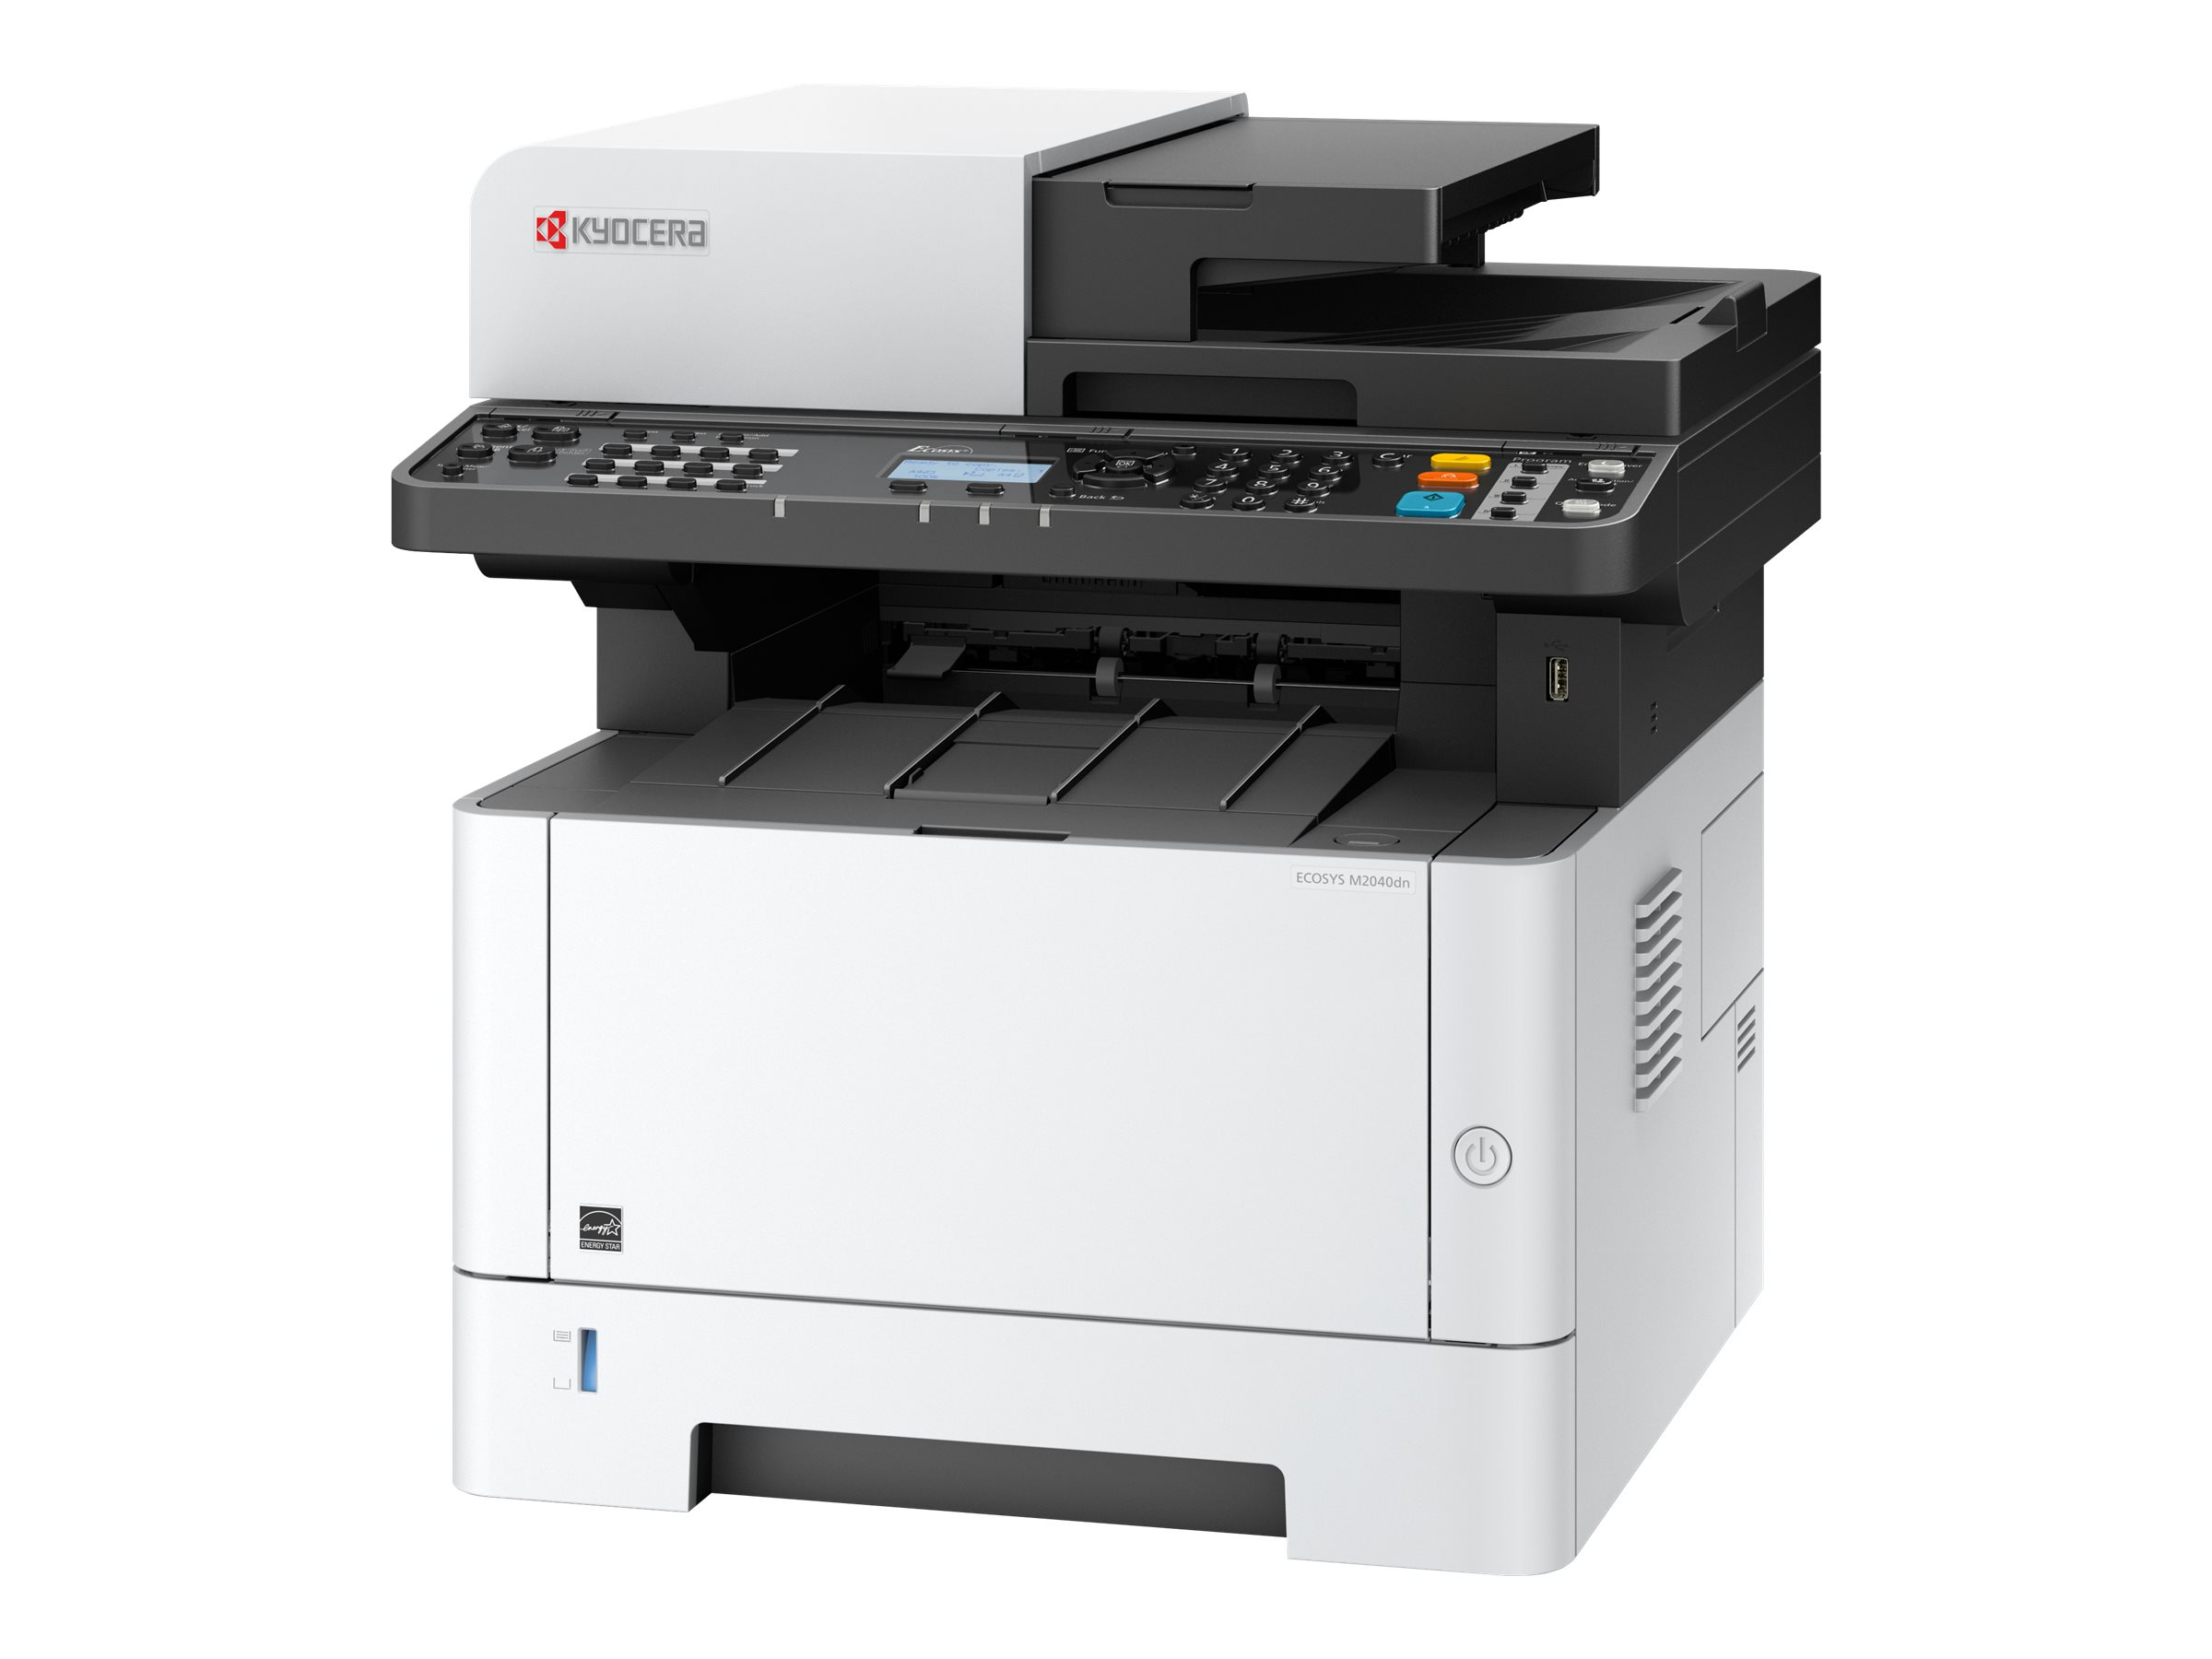 Kyocera ECOSYS M2040dn/KL3 - Multifunktionsdrucker - s/w - Laser - Legal (216 x 356 mm)